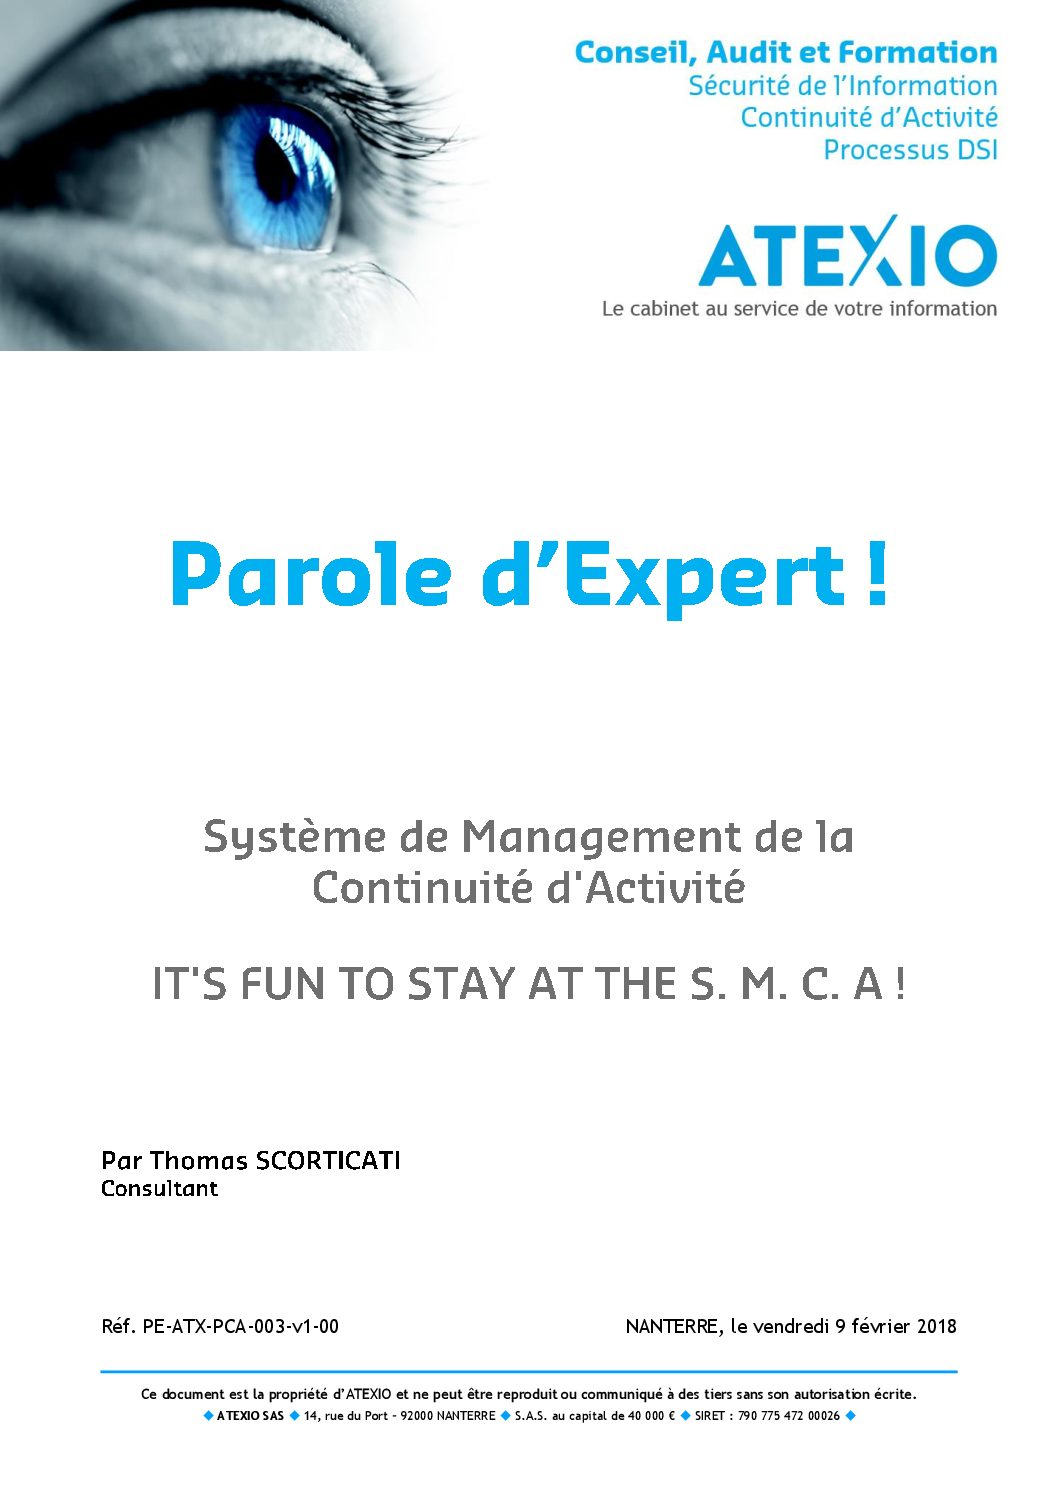 Système de Management de la Continuité d'Activité – It's fun to stay at the S. M. C. A.!